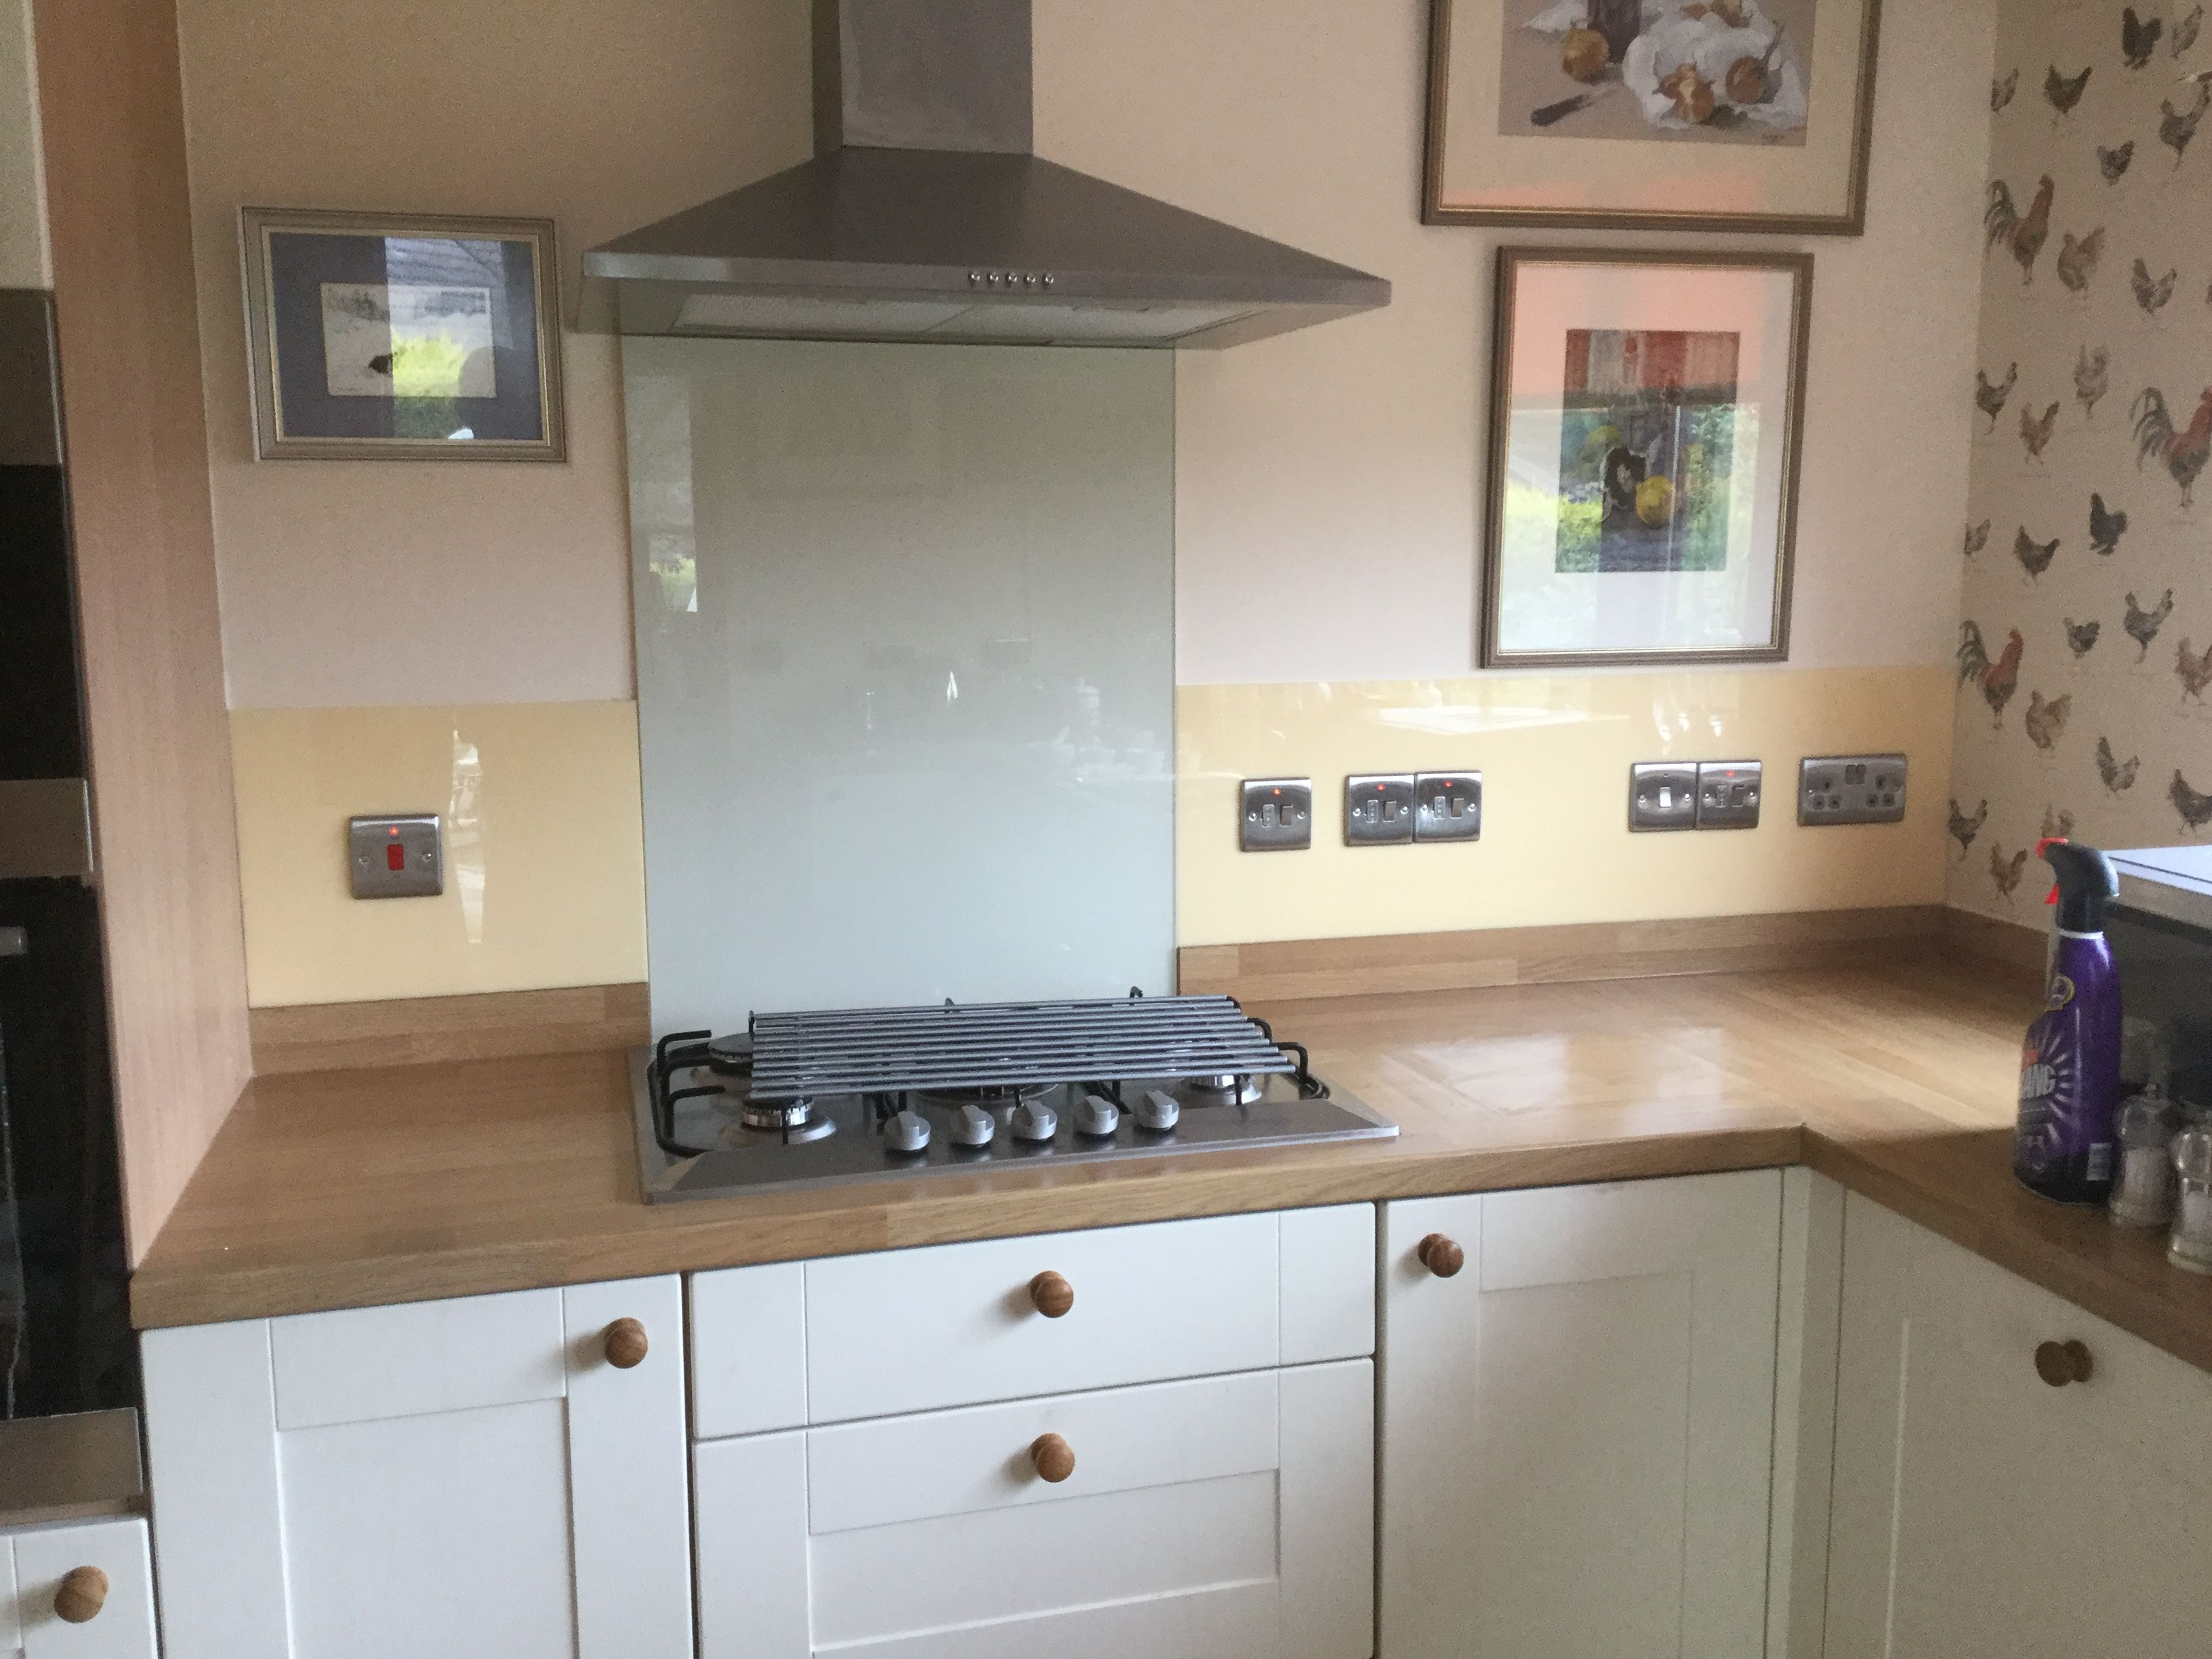 Cream Acrylic Has Been Used To Make A Beautiful Splashback In This Country Kitchen Acrylic Kitchen Splashbacks Country Kitchen Splashback